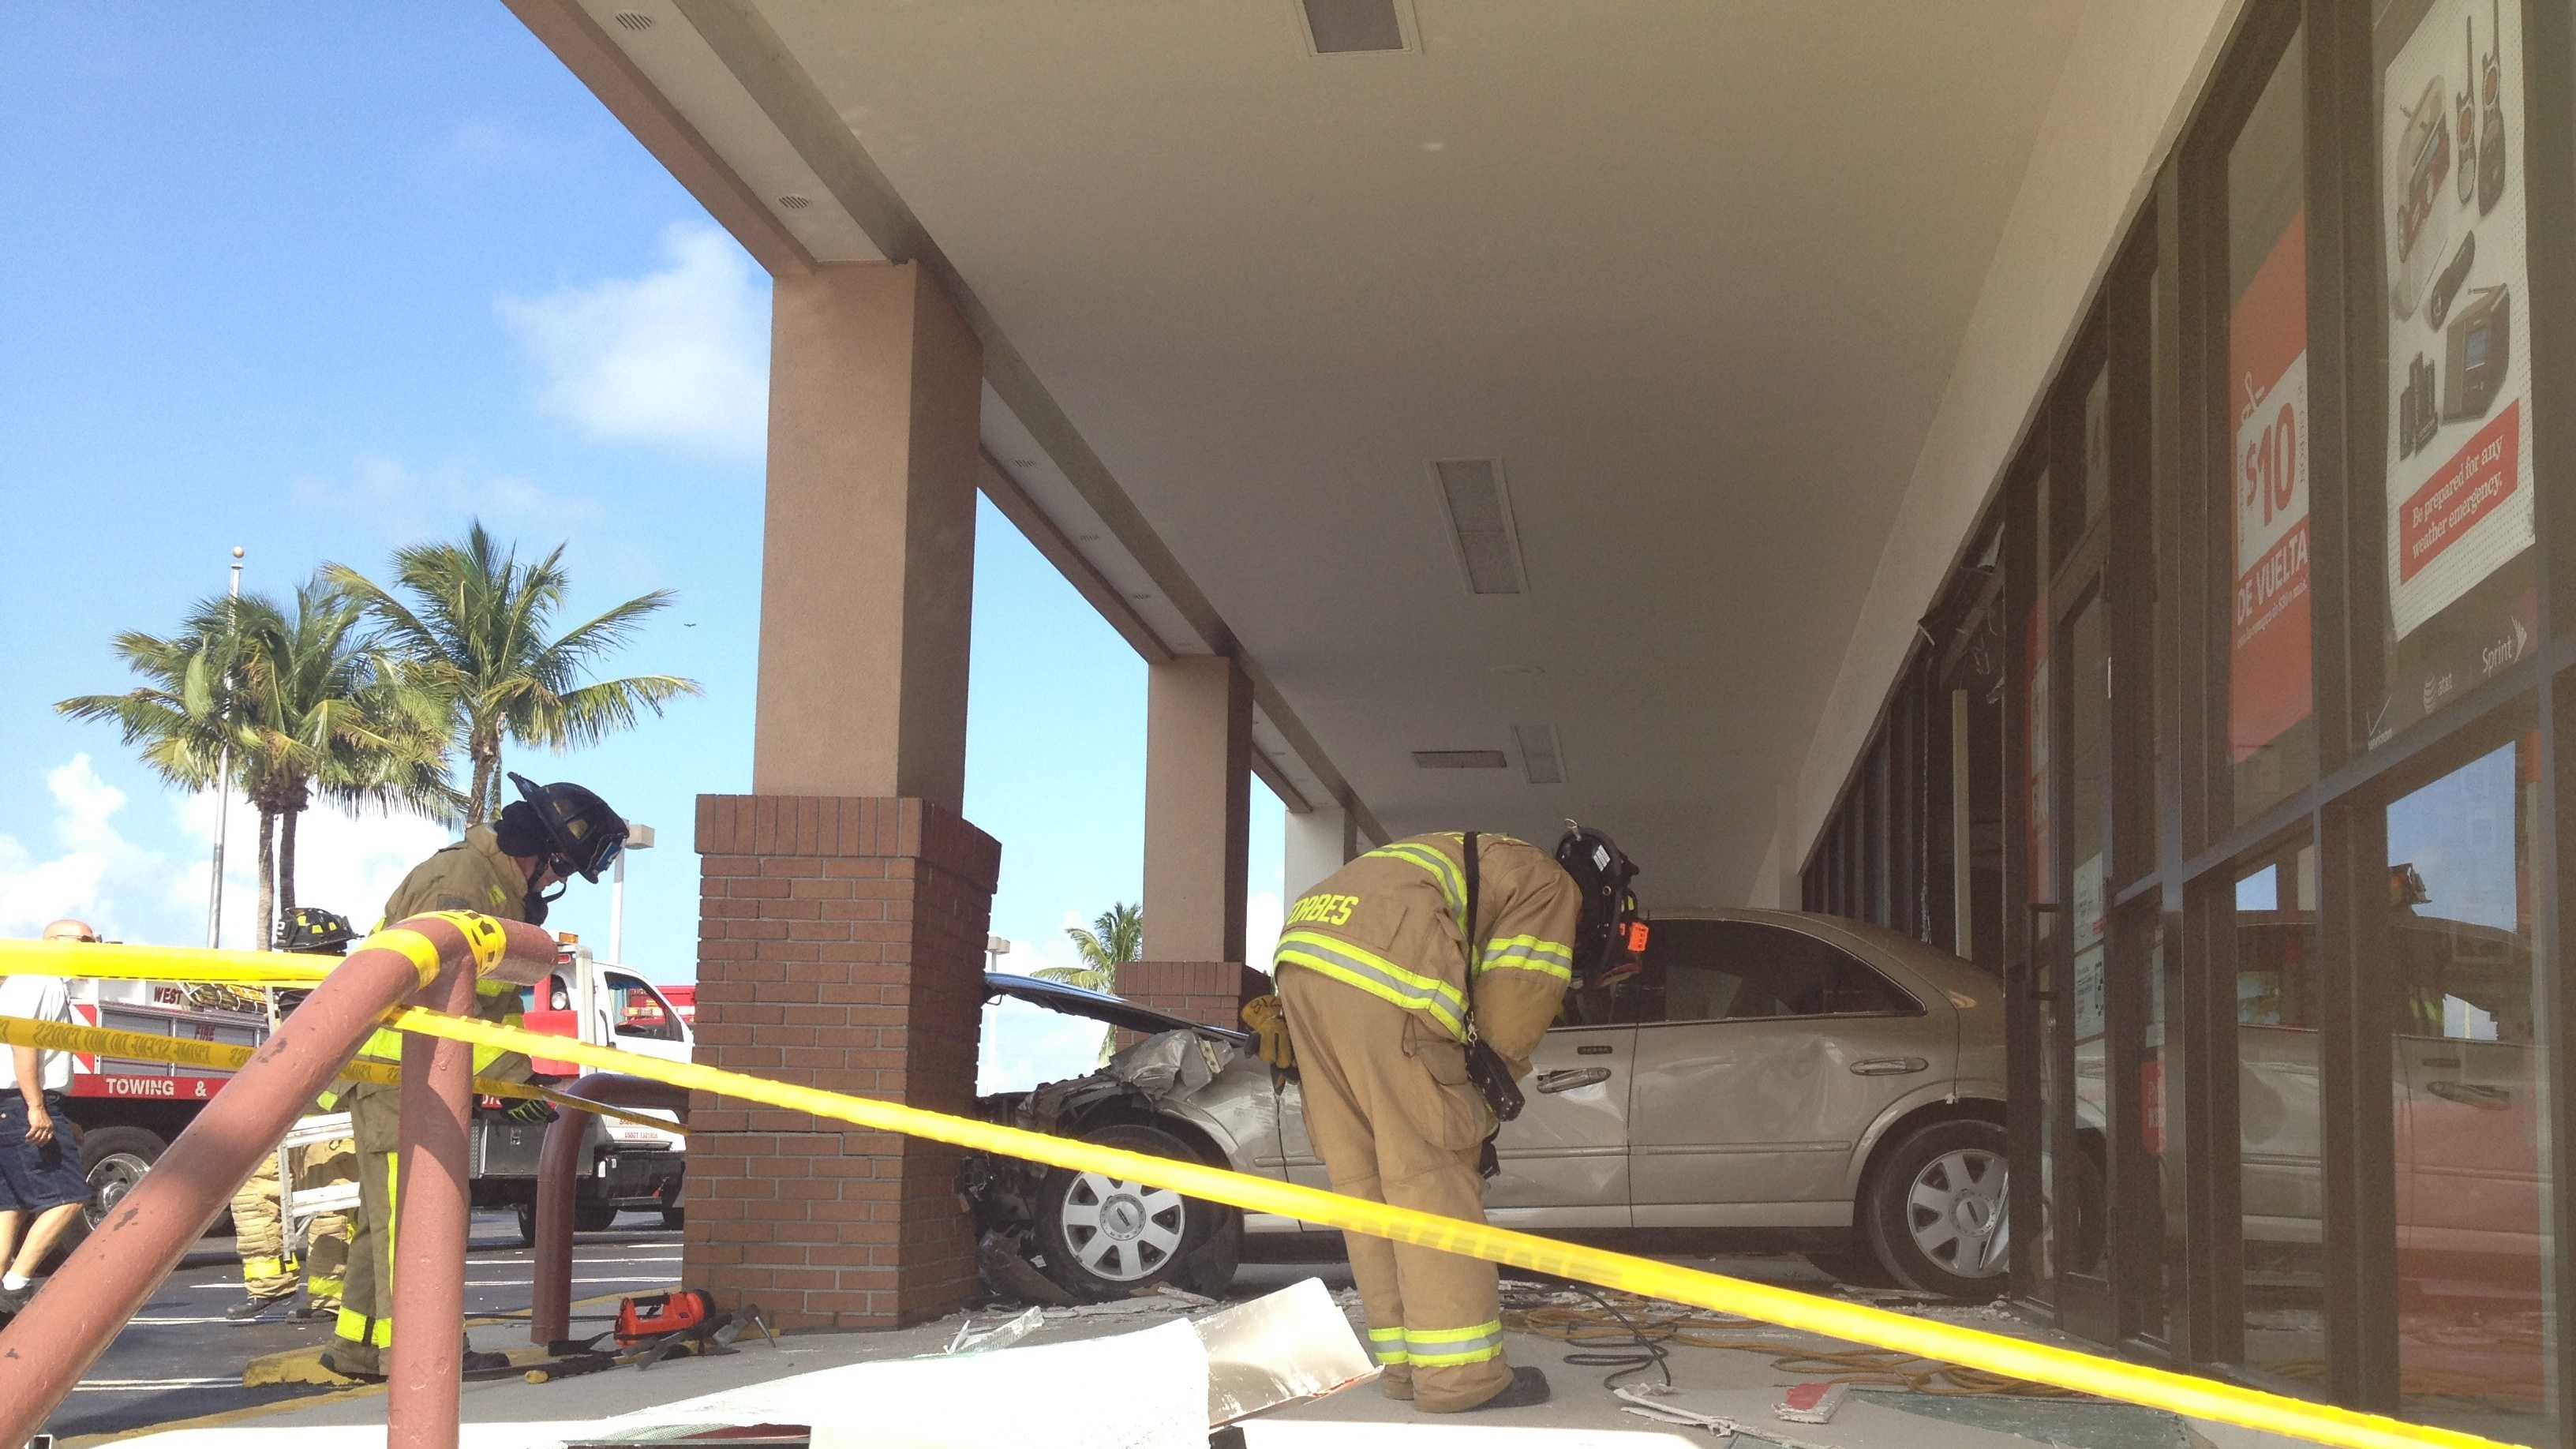 An elderly woman accidentally put her car in reverse and backed into this building in West Palm Beach.